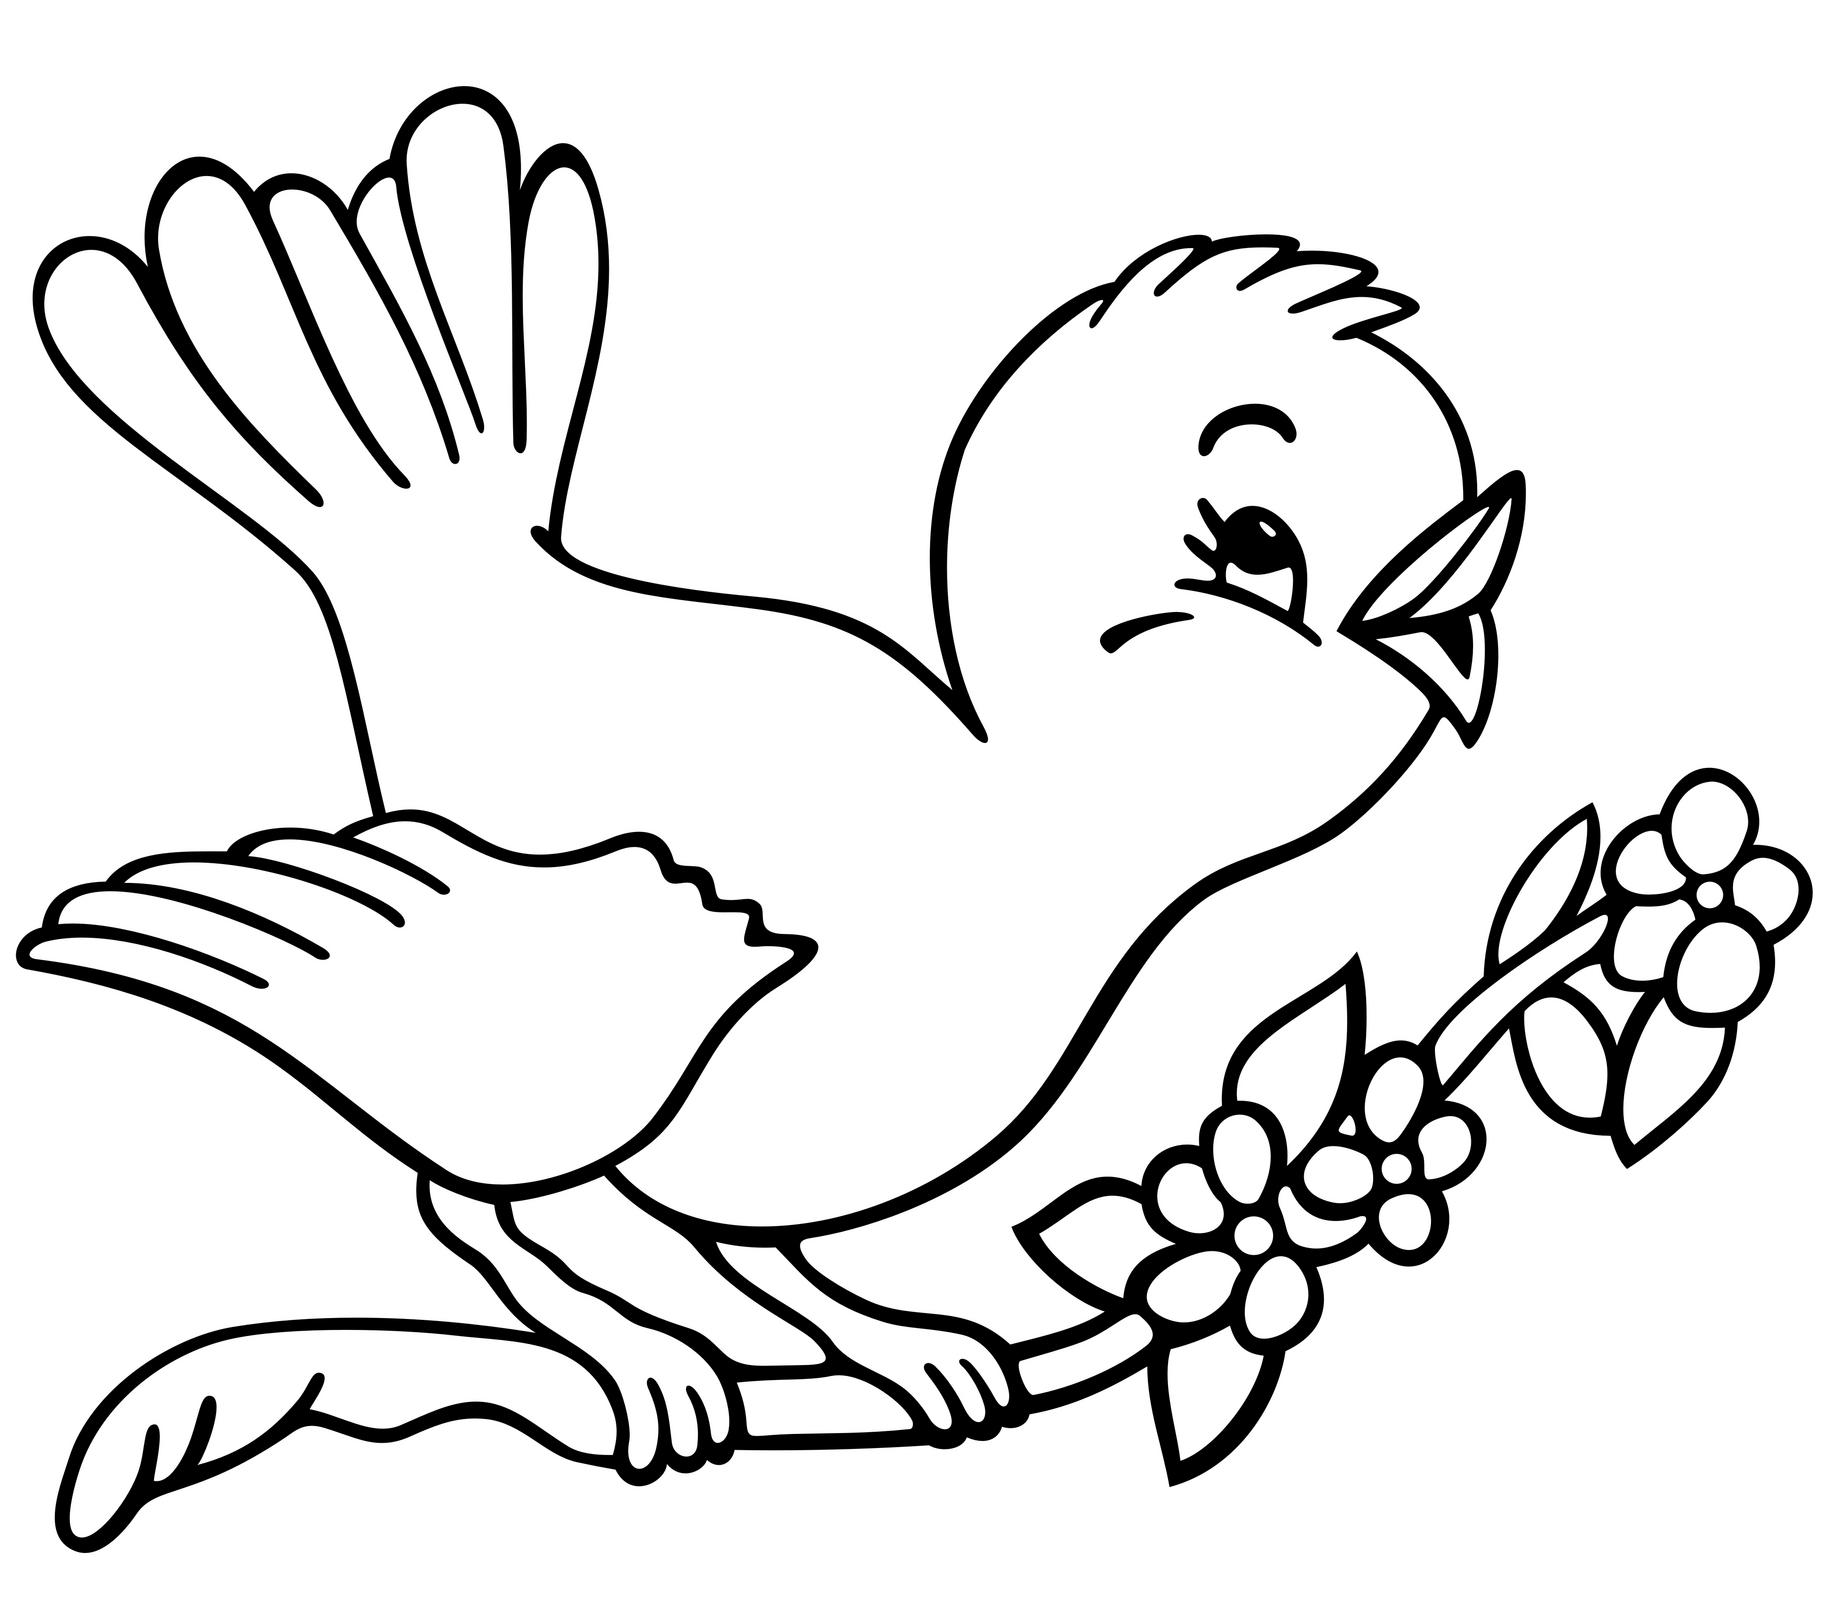 macaw bird coloring page bird coloring pages parrot coloring page bird coloring macaw coloring bird page